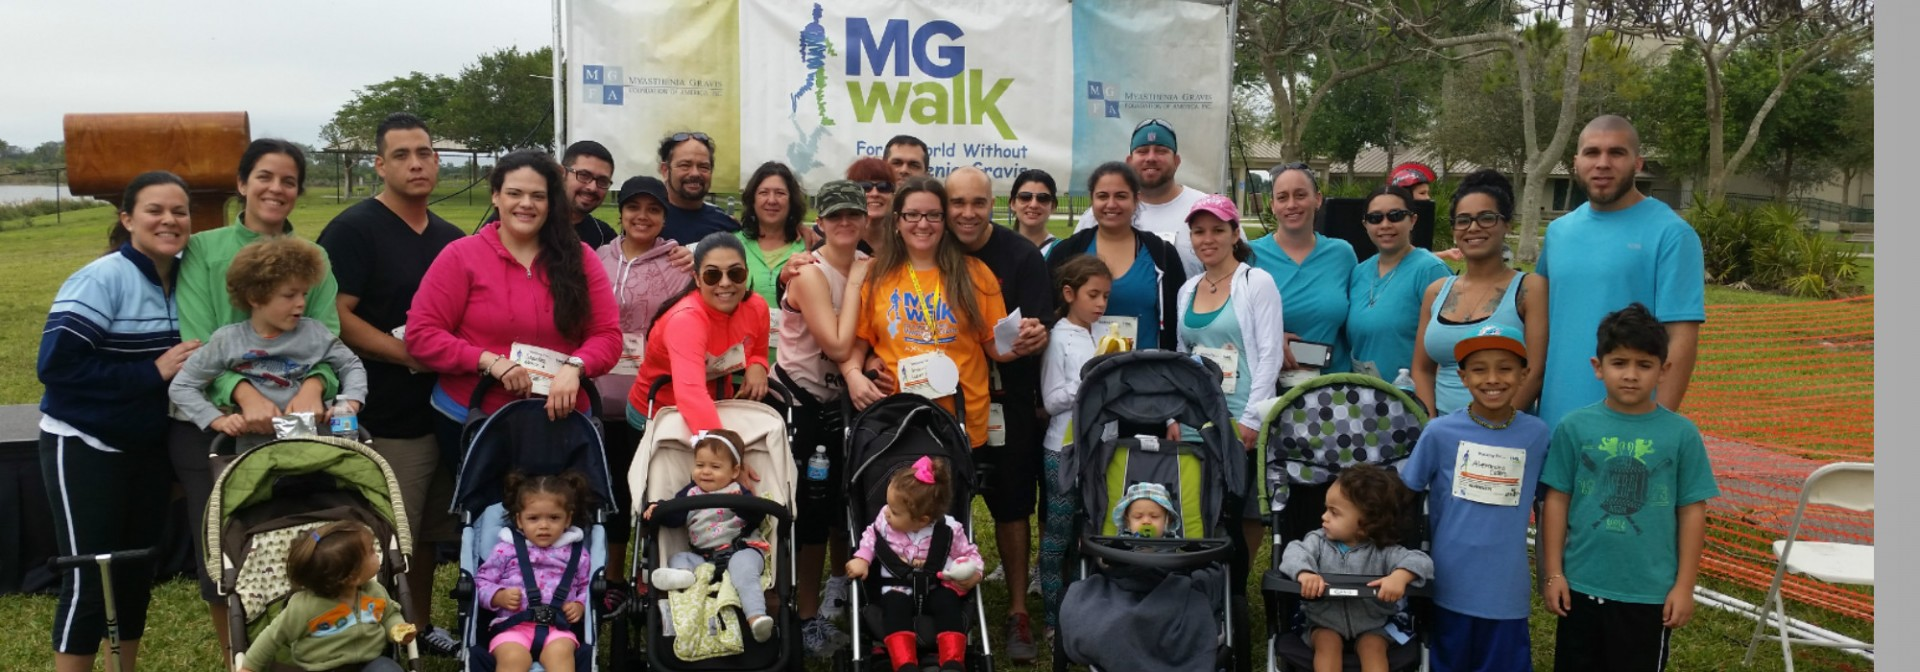 South Florida MG Walk